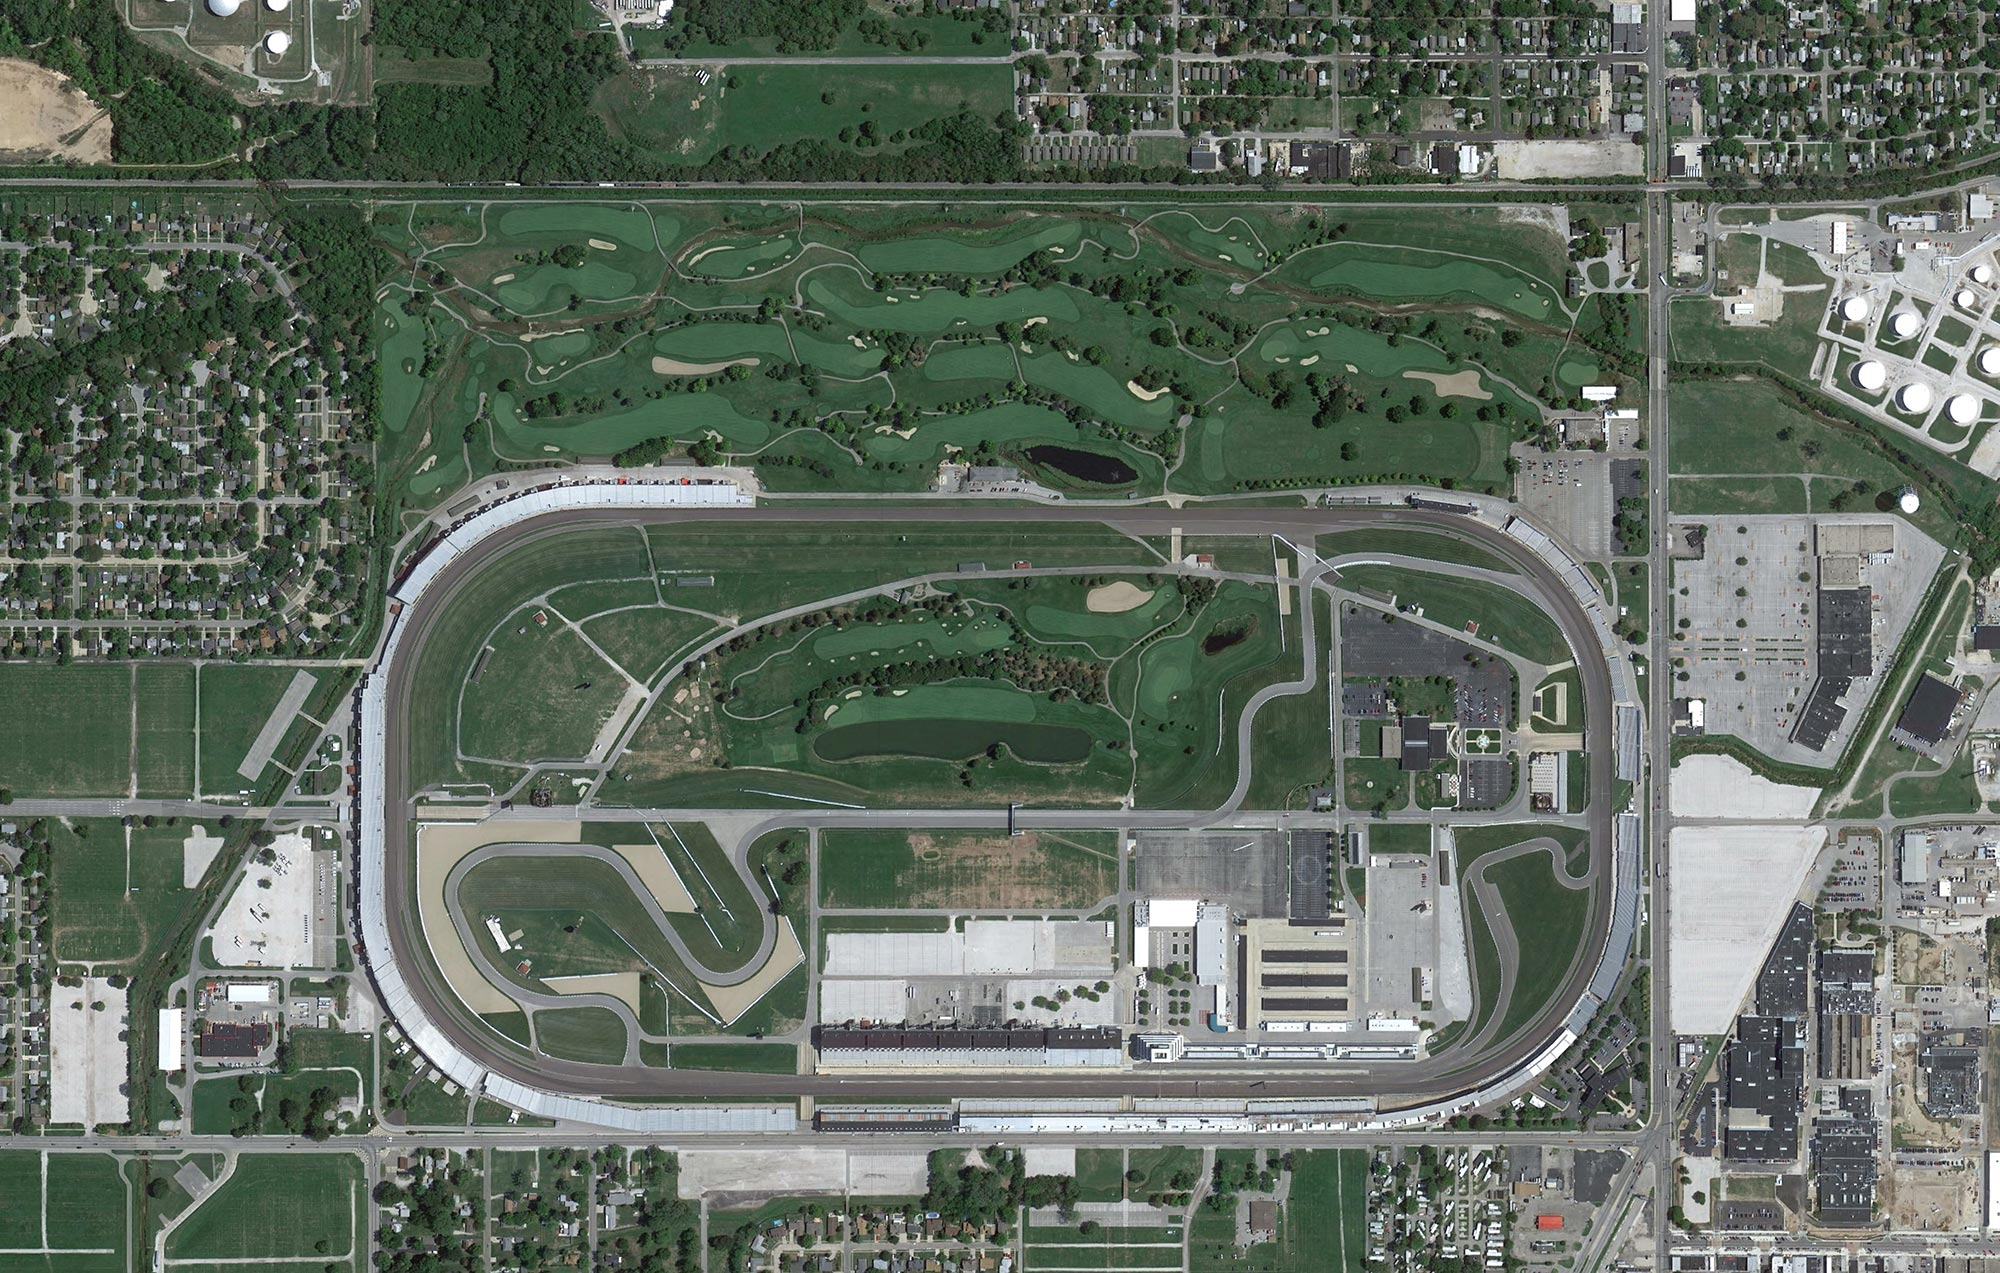 What 39 s bigger indy motor speedway or big 10 football for The indianapolis motor speedway